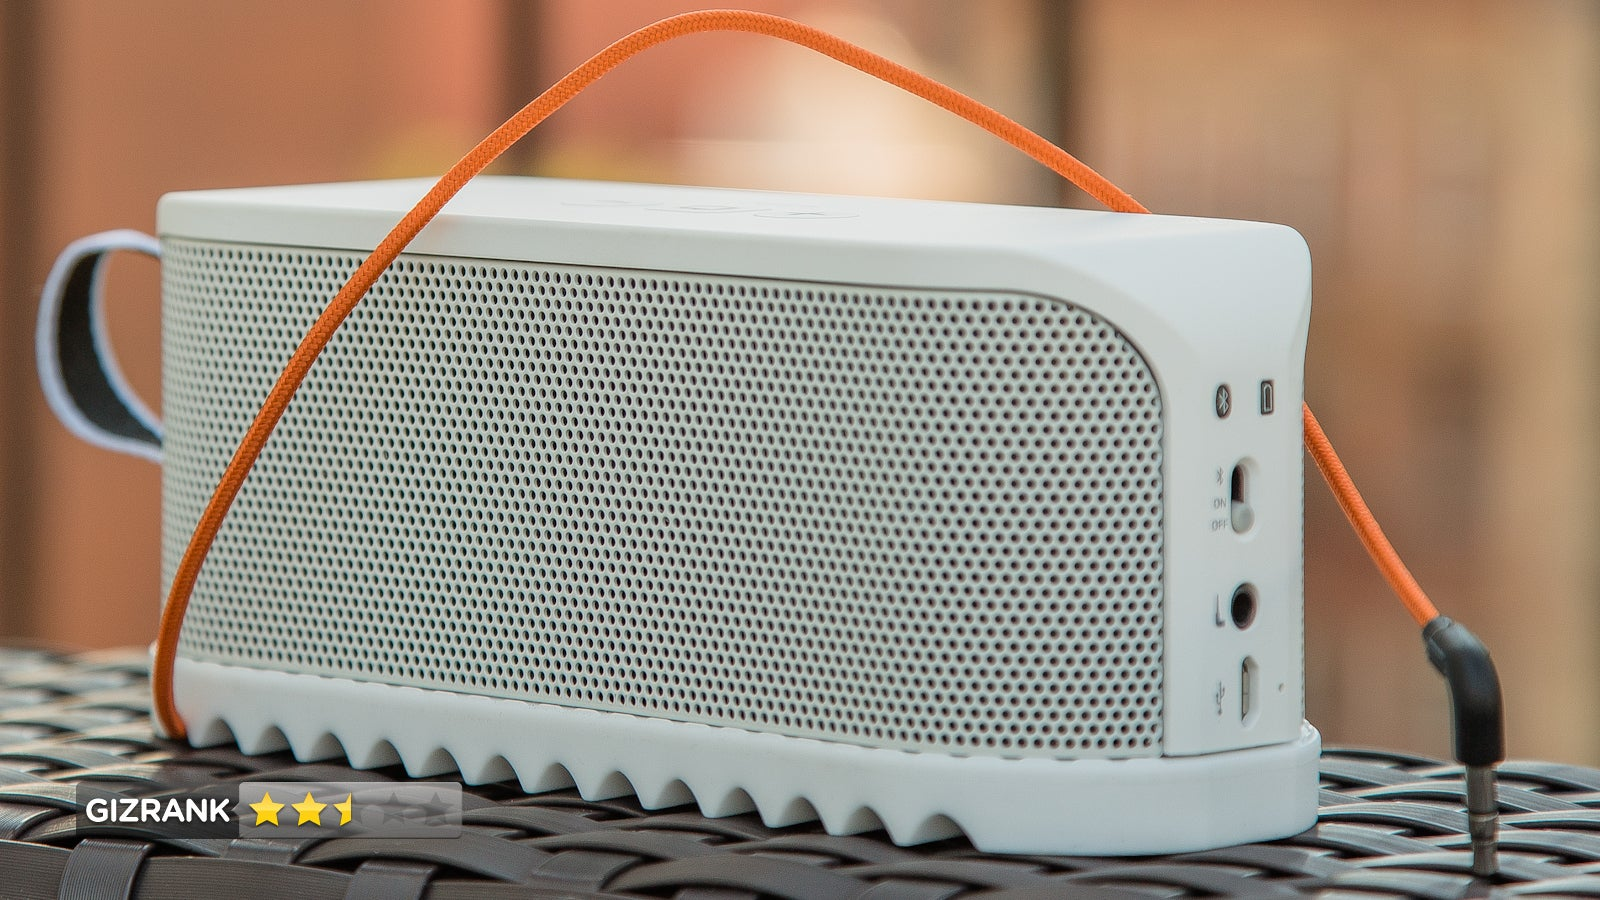 Jabra Solemate Review: This Fresh Looking Bluetooth Speaker Won't Party